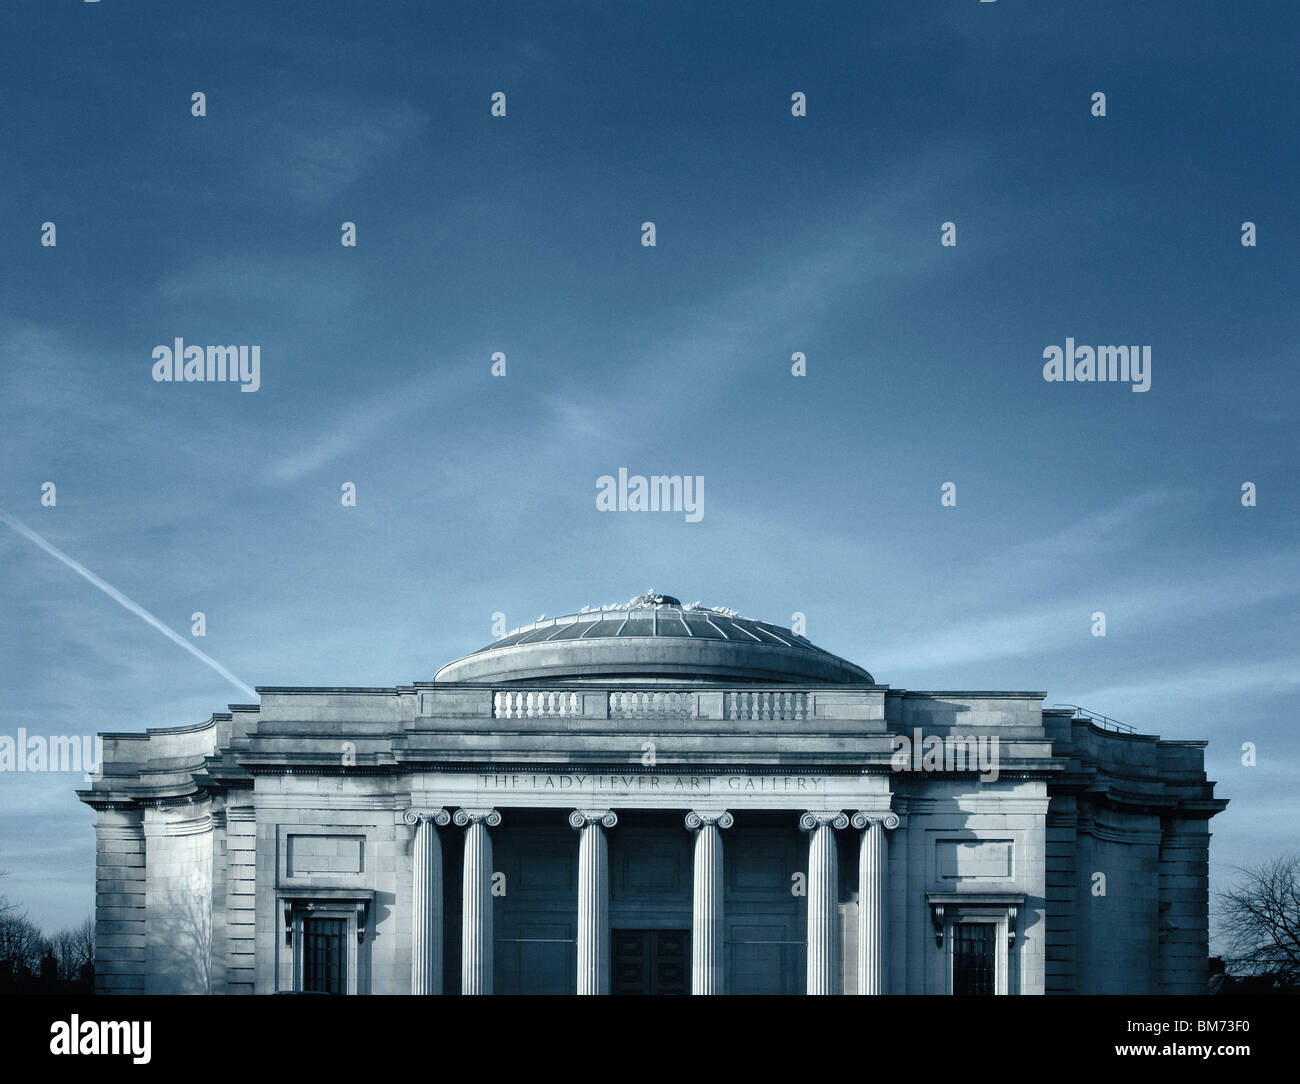 architecture image of the Lady Lever art gallery in Port Sunlight, Wirral, UK showing front elevation, pillars and - Stock Image